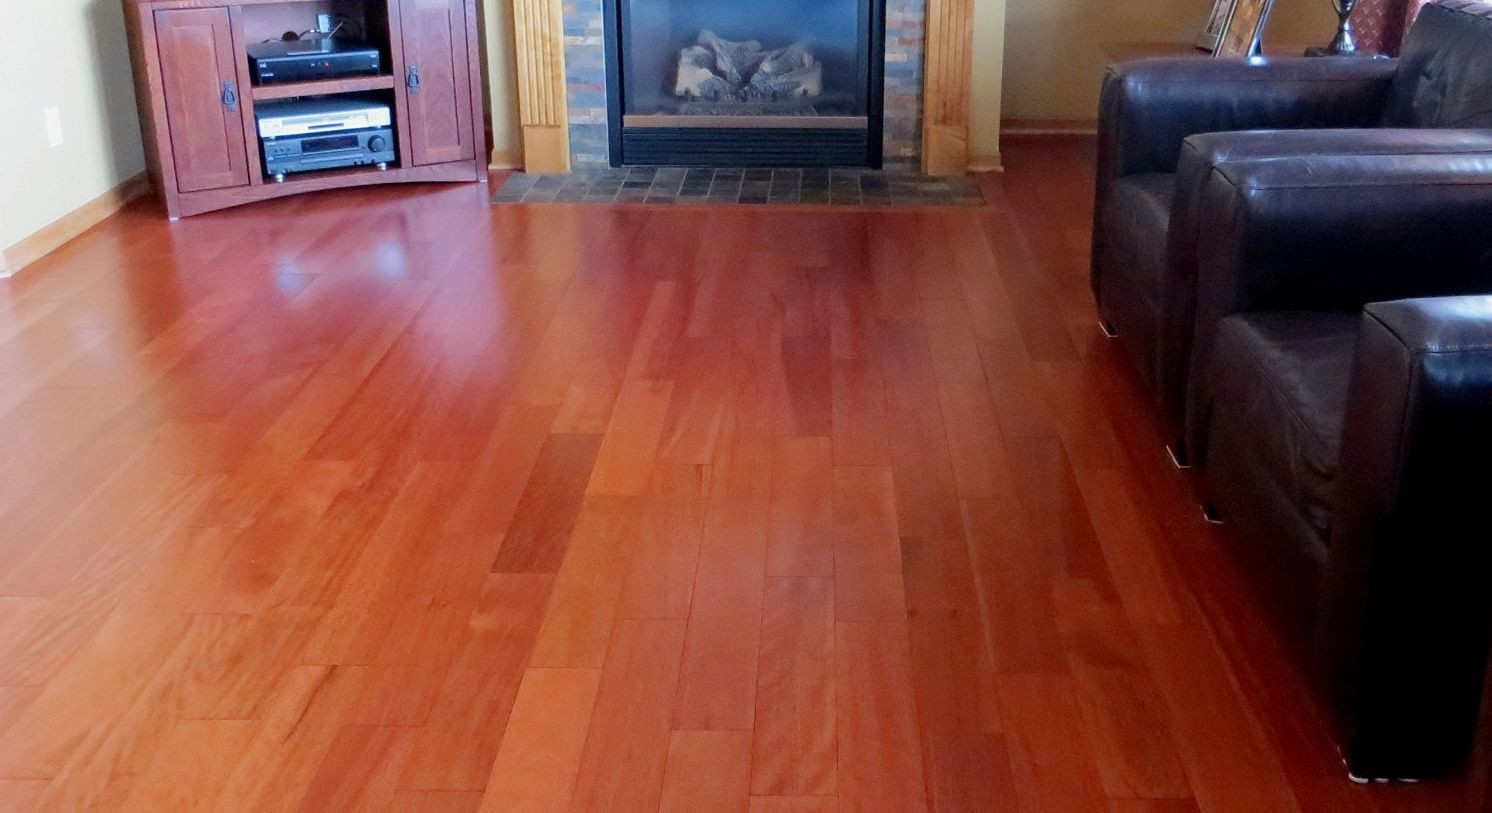 lumber liquidators hardwood flooring of malaccan cherry vs brazilian cherry flooring throughout malaccan cherry or taun wood plank flooring 56a4a14f5f9b58b7d0d7e61b jpg